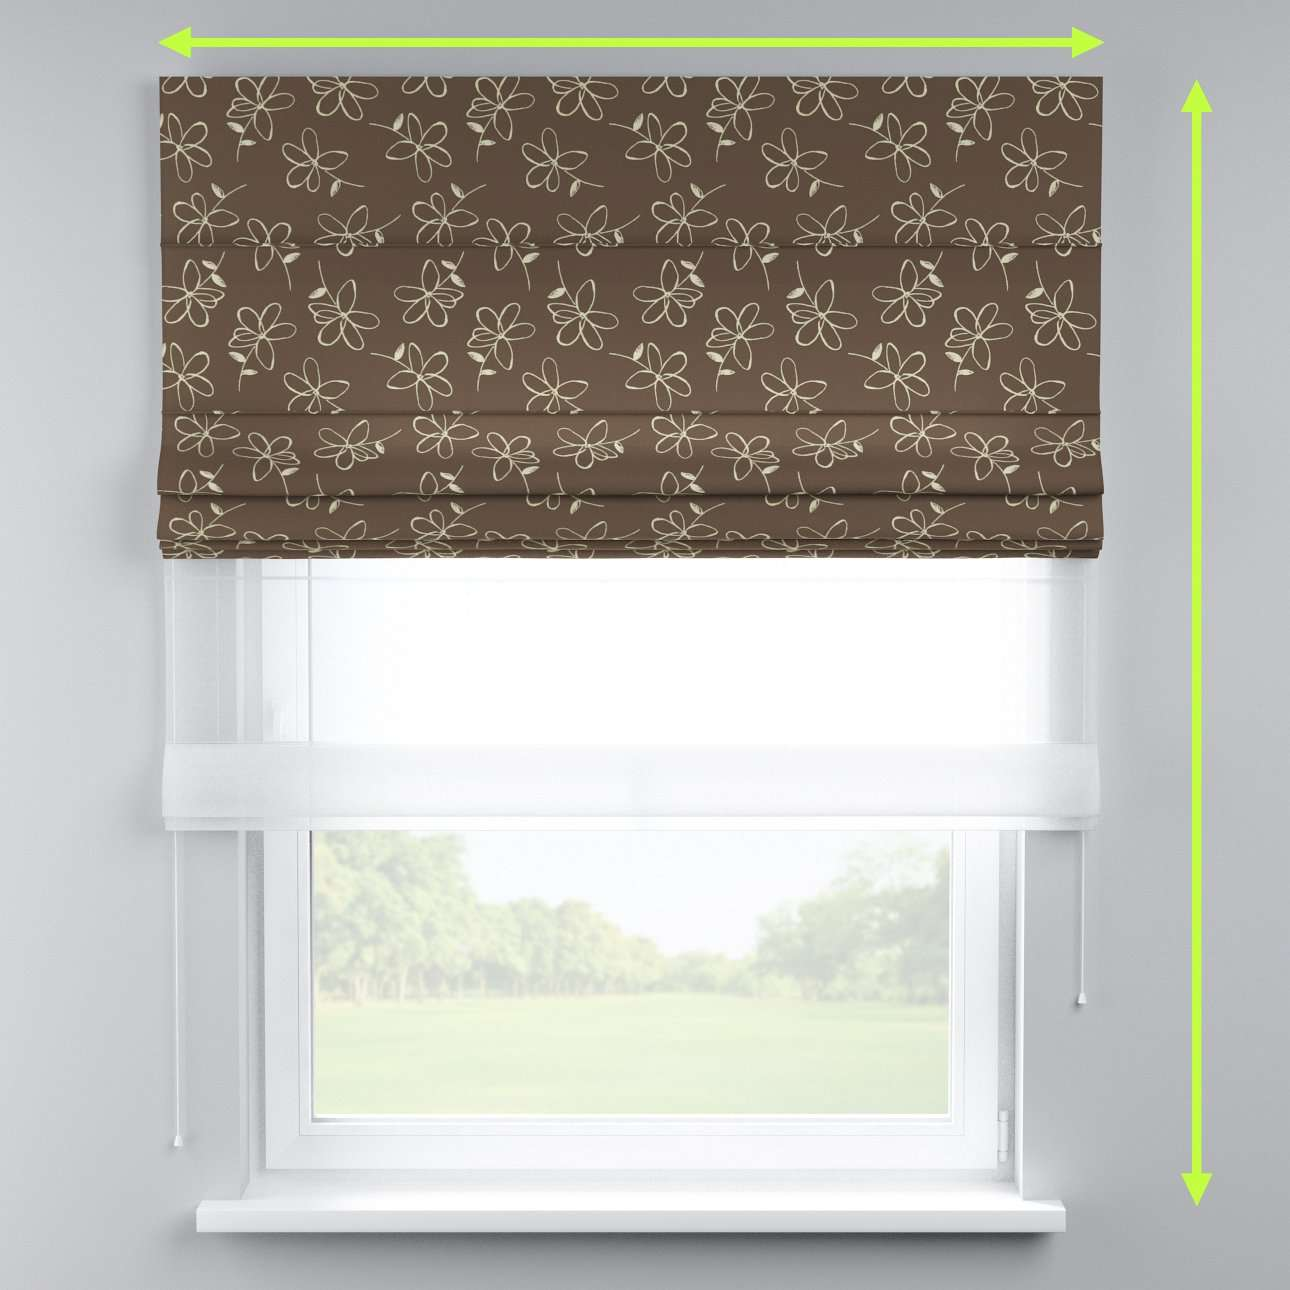 Voile and fabric roman blind (DUO II) in collection Flowers, fabric: 311-03